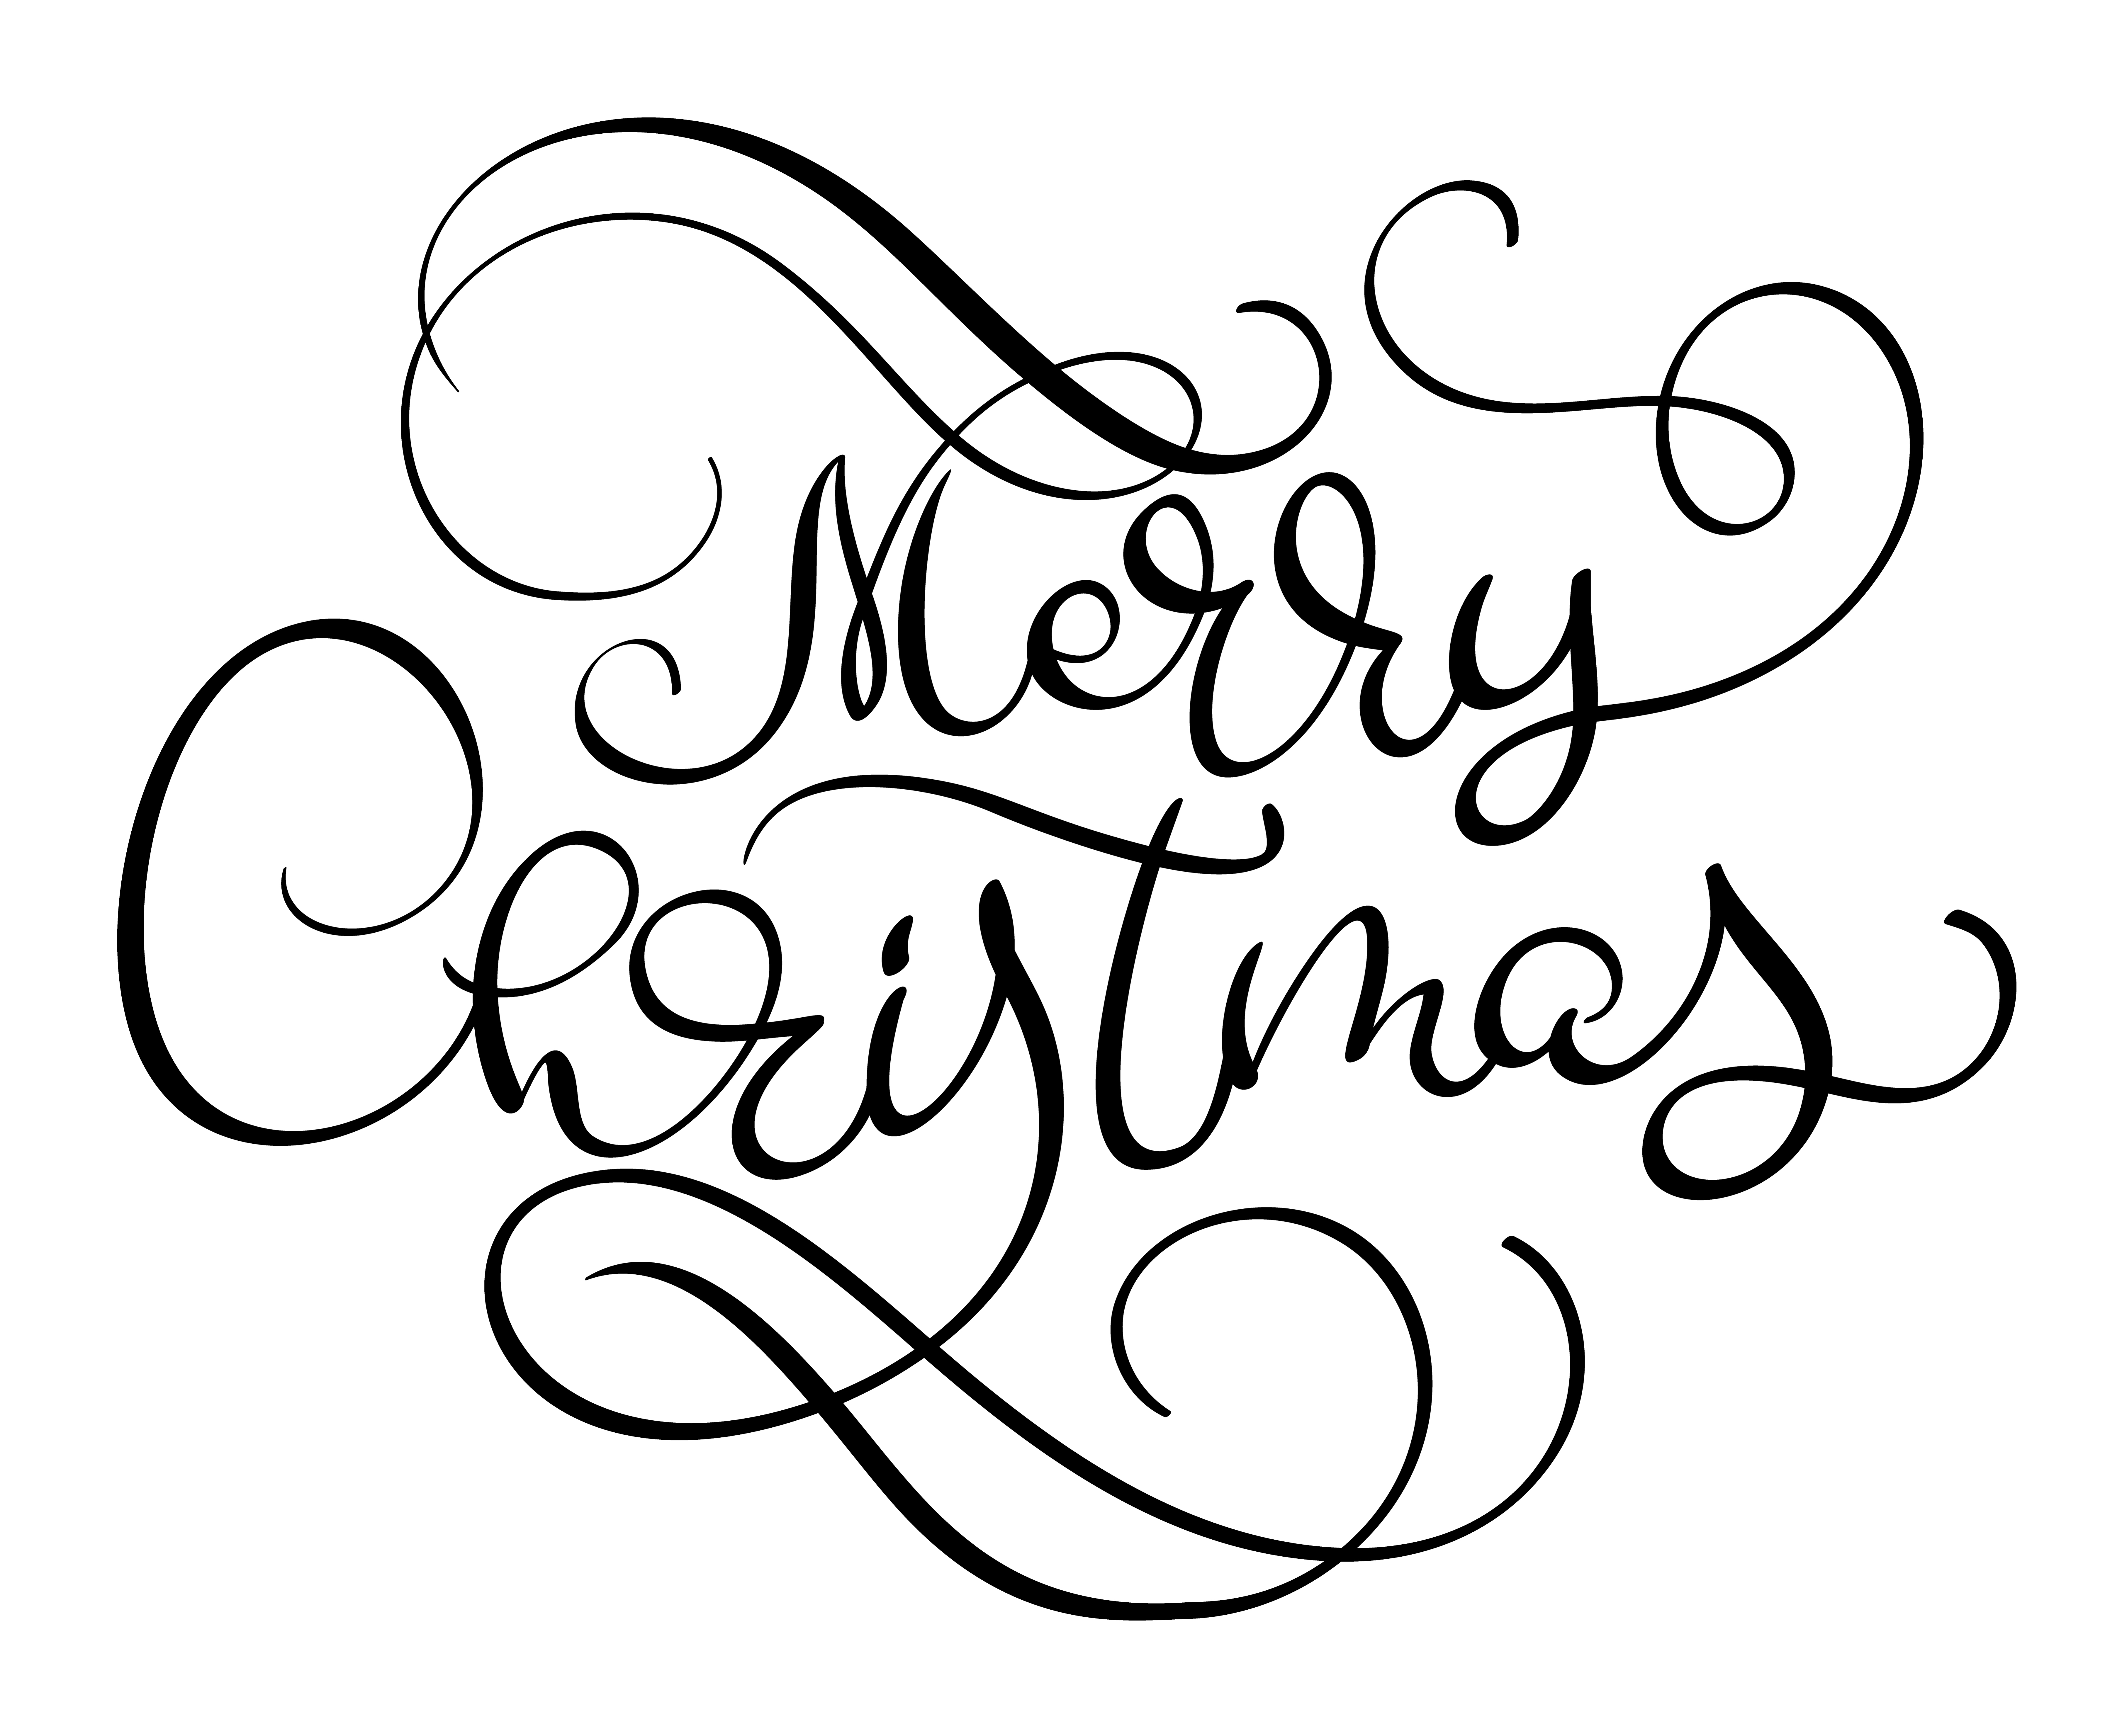 Merry Christmas Vector Text Calligraphic Lettering Design Card Template Creative Typography For Holiday Greeting Gift Poster Calligraphy Font Style Banner Download Free Vectors Clipart Graphics Vector Art